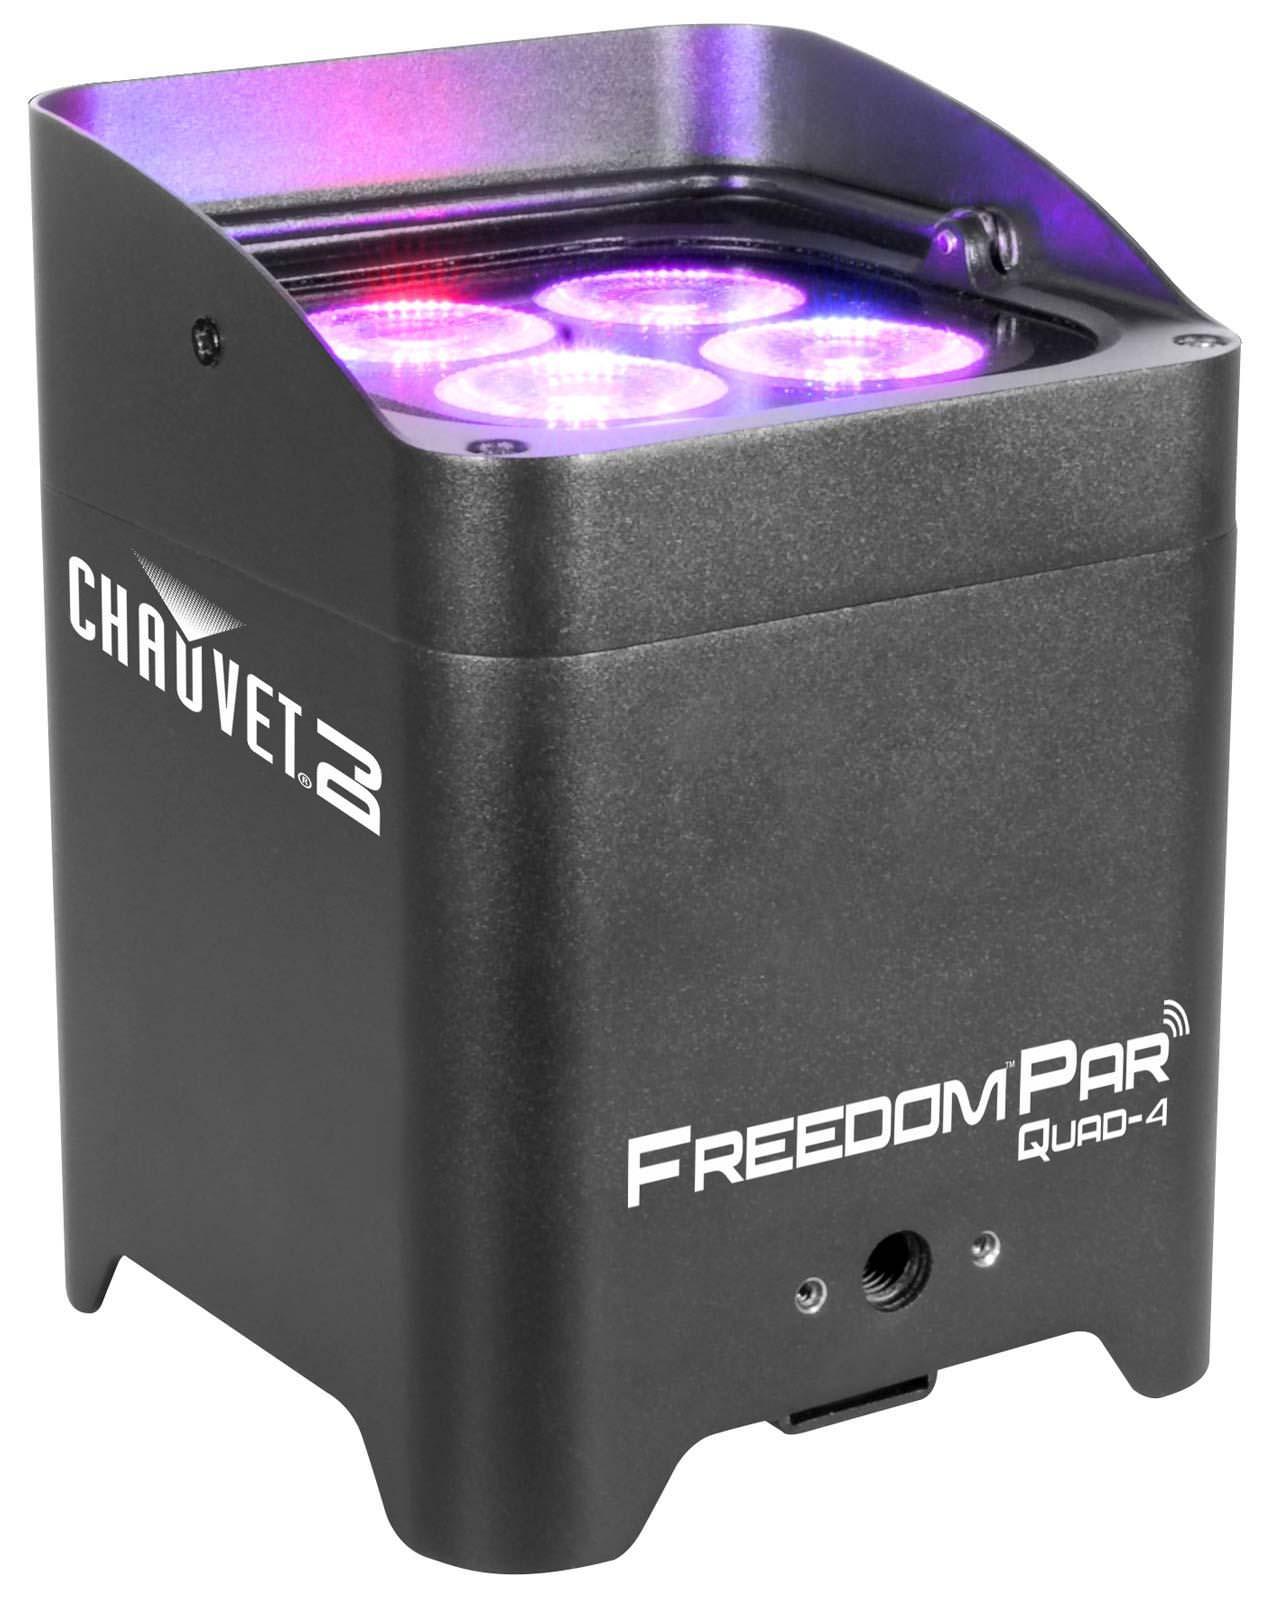 chauvet-dj_freedom-par-quad-4_right.jpg